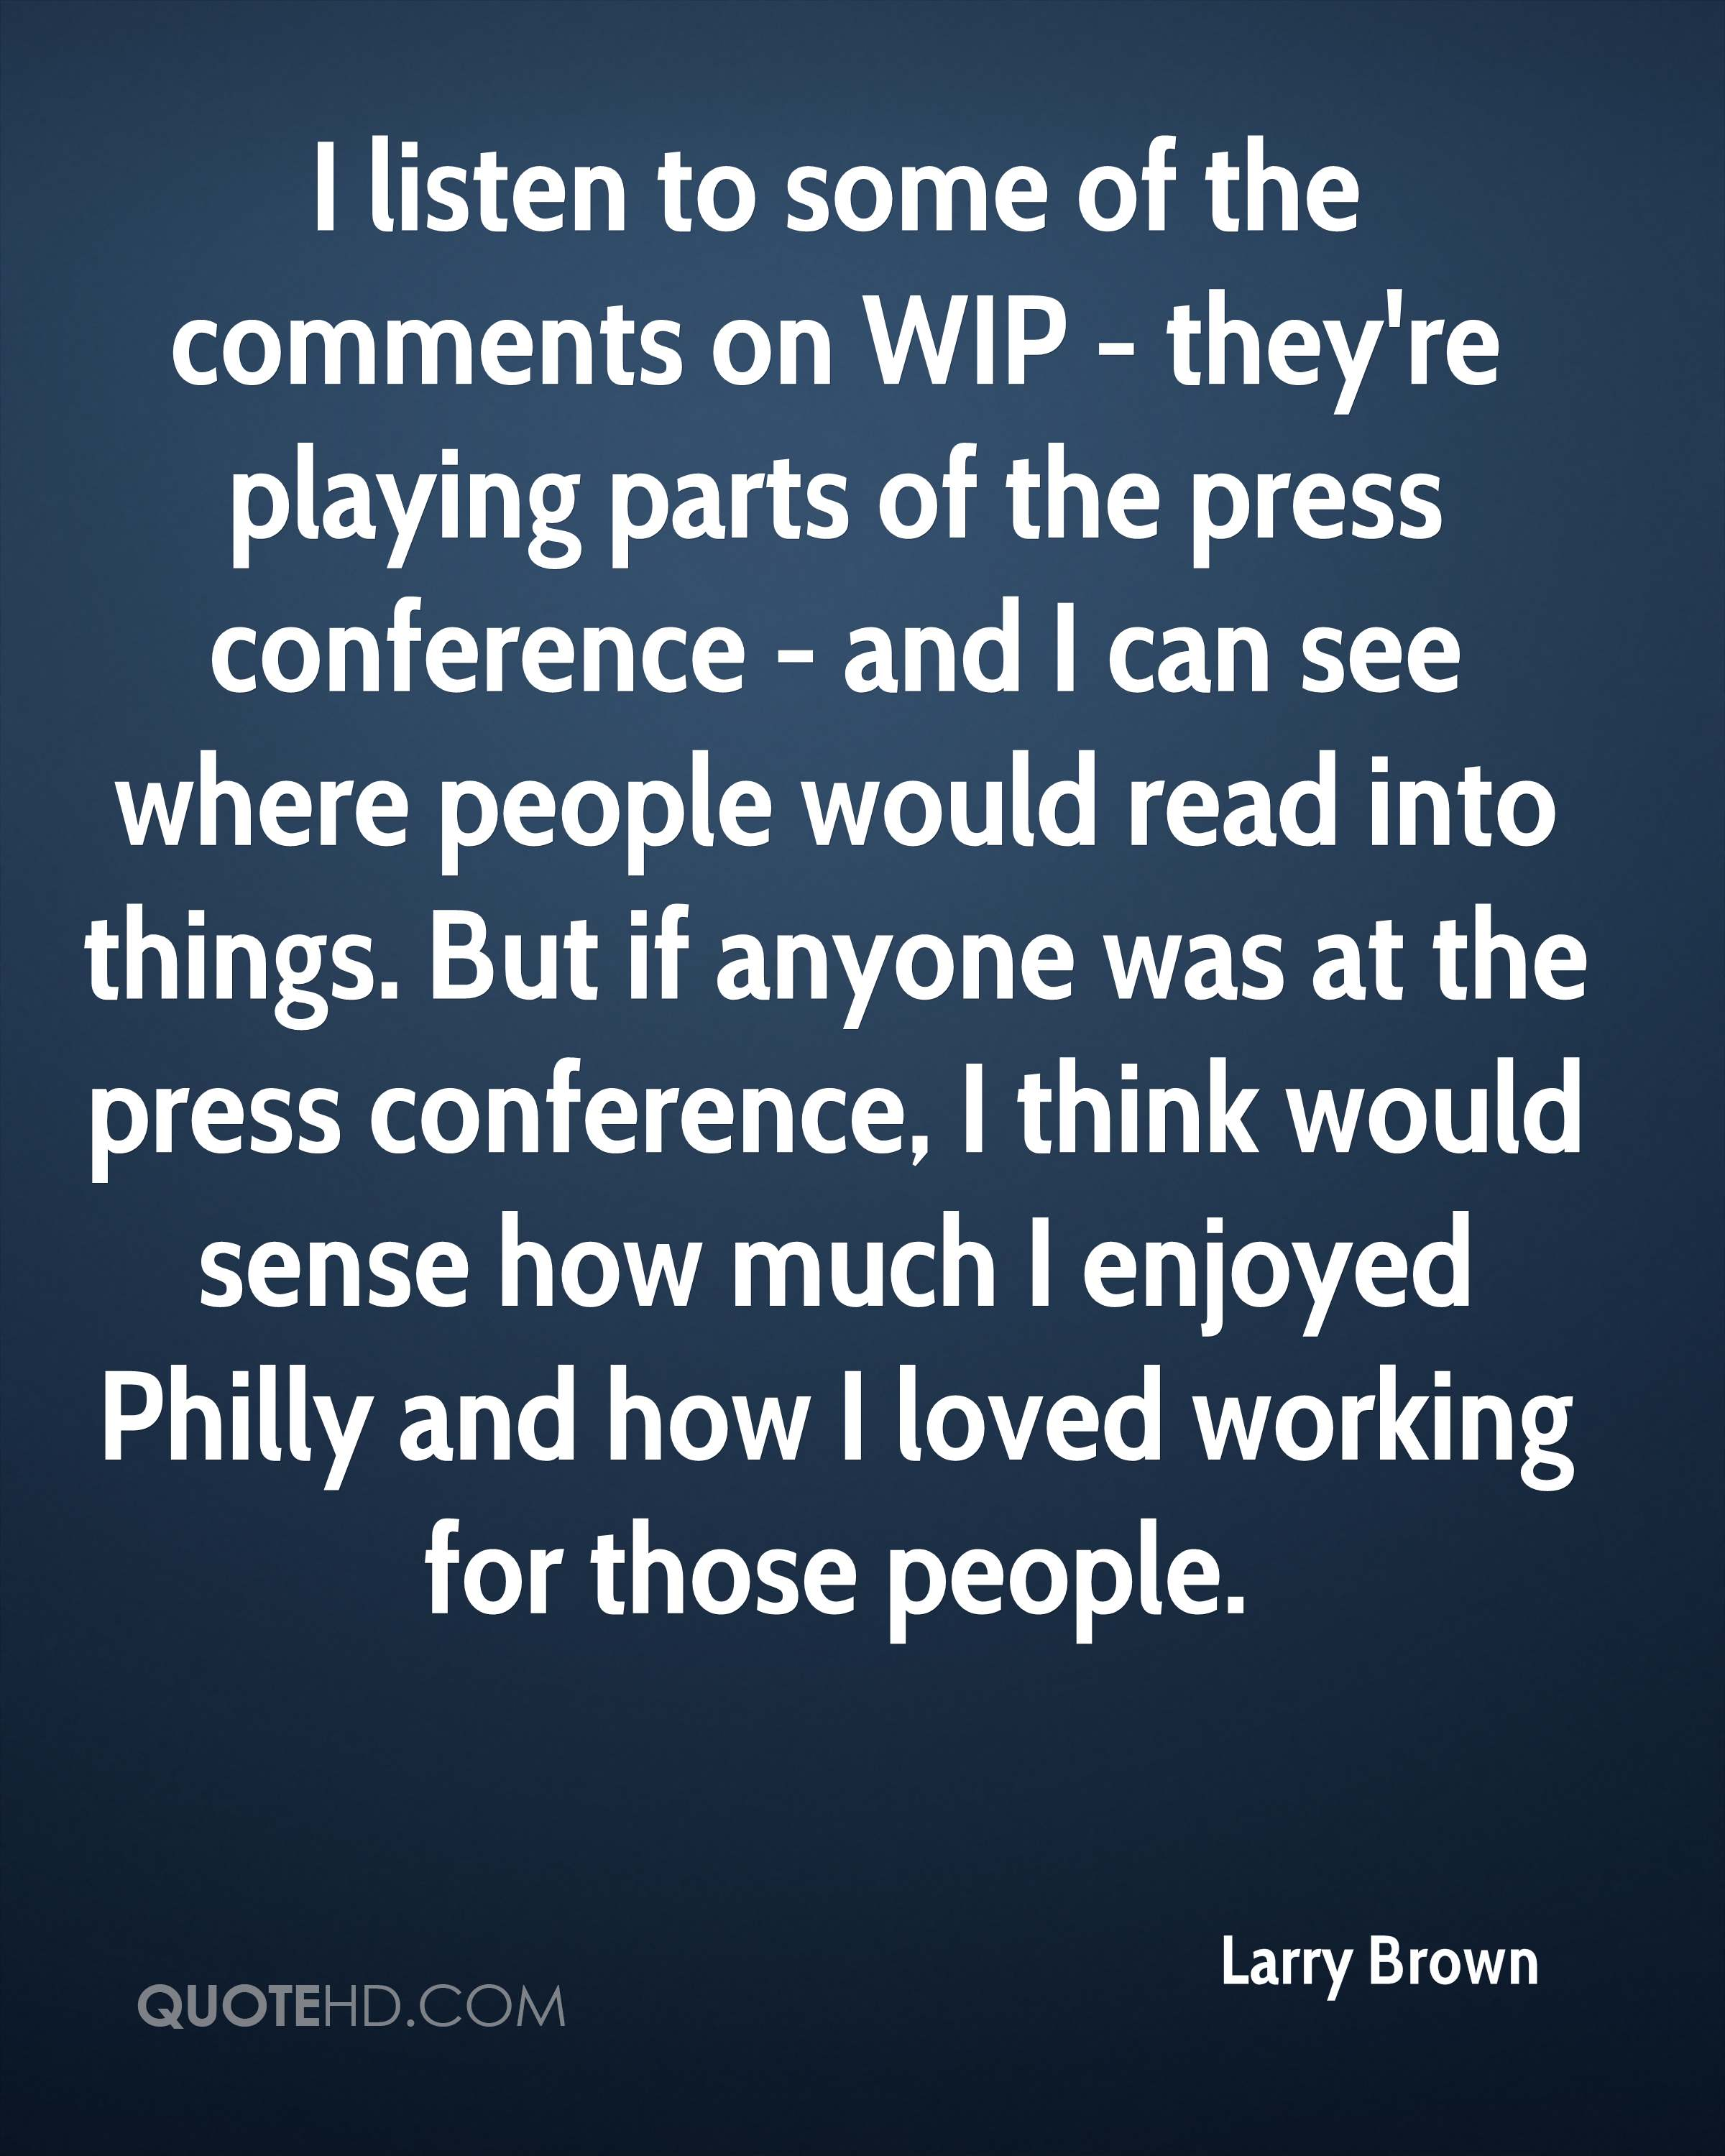 I listen to some of the comments on WIP - they're playing parts of the press conference - and I can see where people would read into things. But if anyone was at the press conference, I think would sense how much I enjoyed Philly and how I loved working for those people.